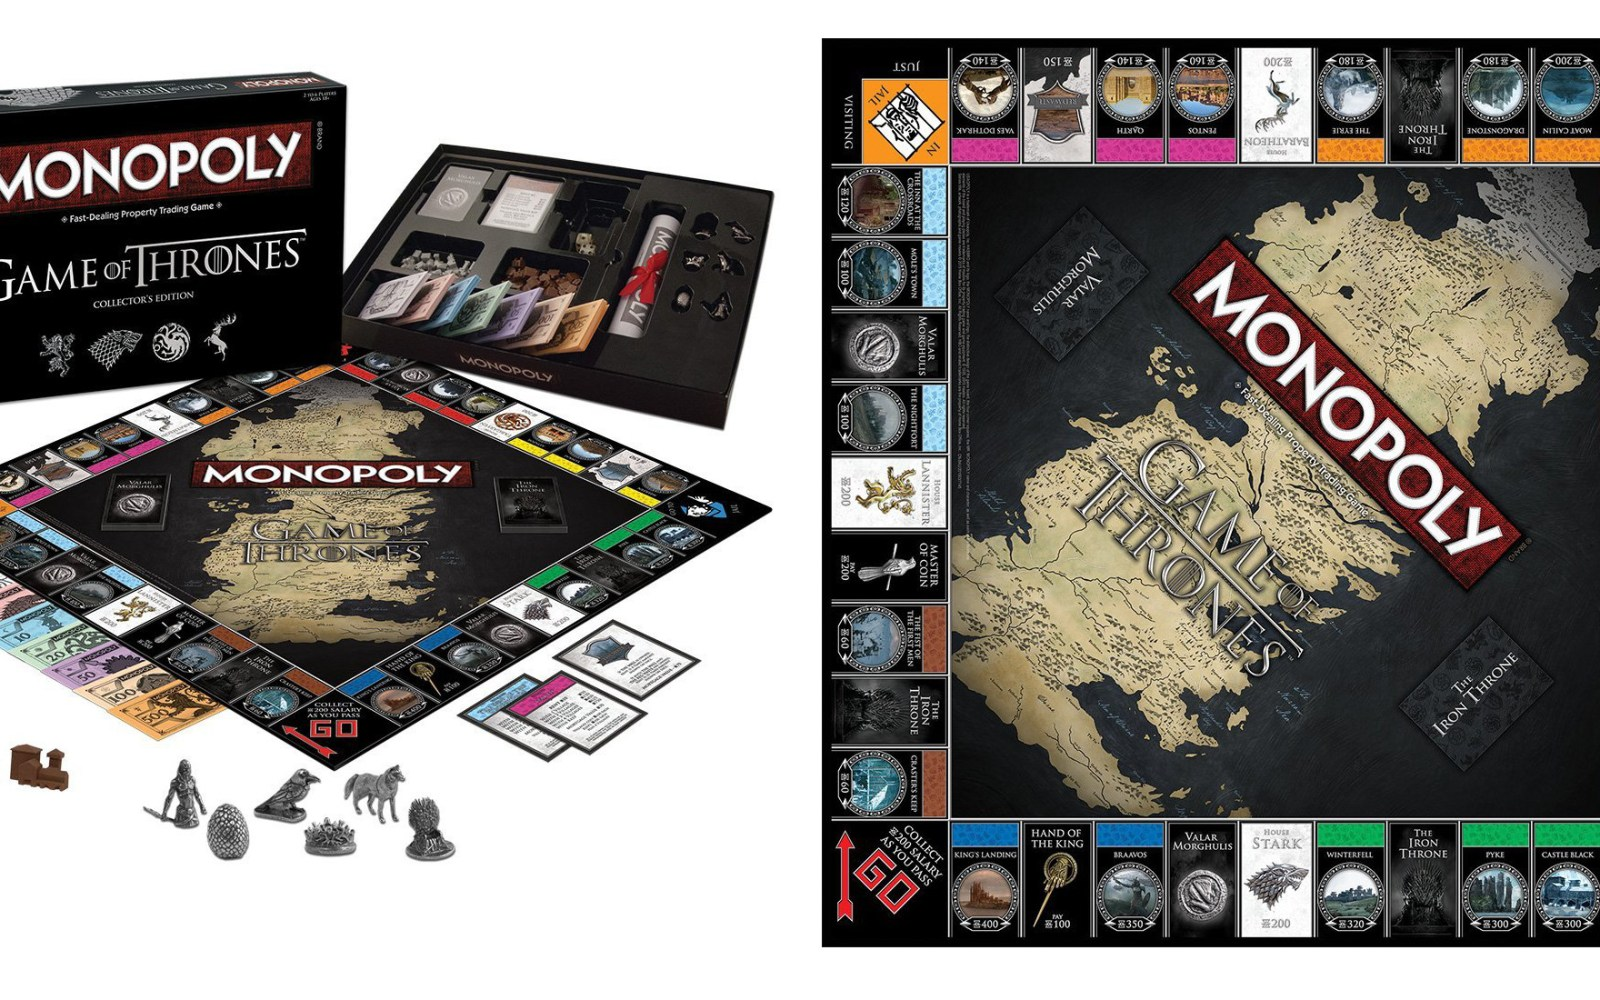 Play Monopoly Game Of Thrones Style With The Collector's